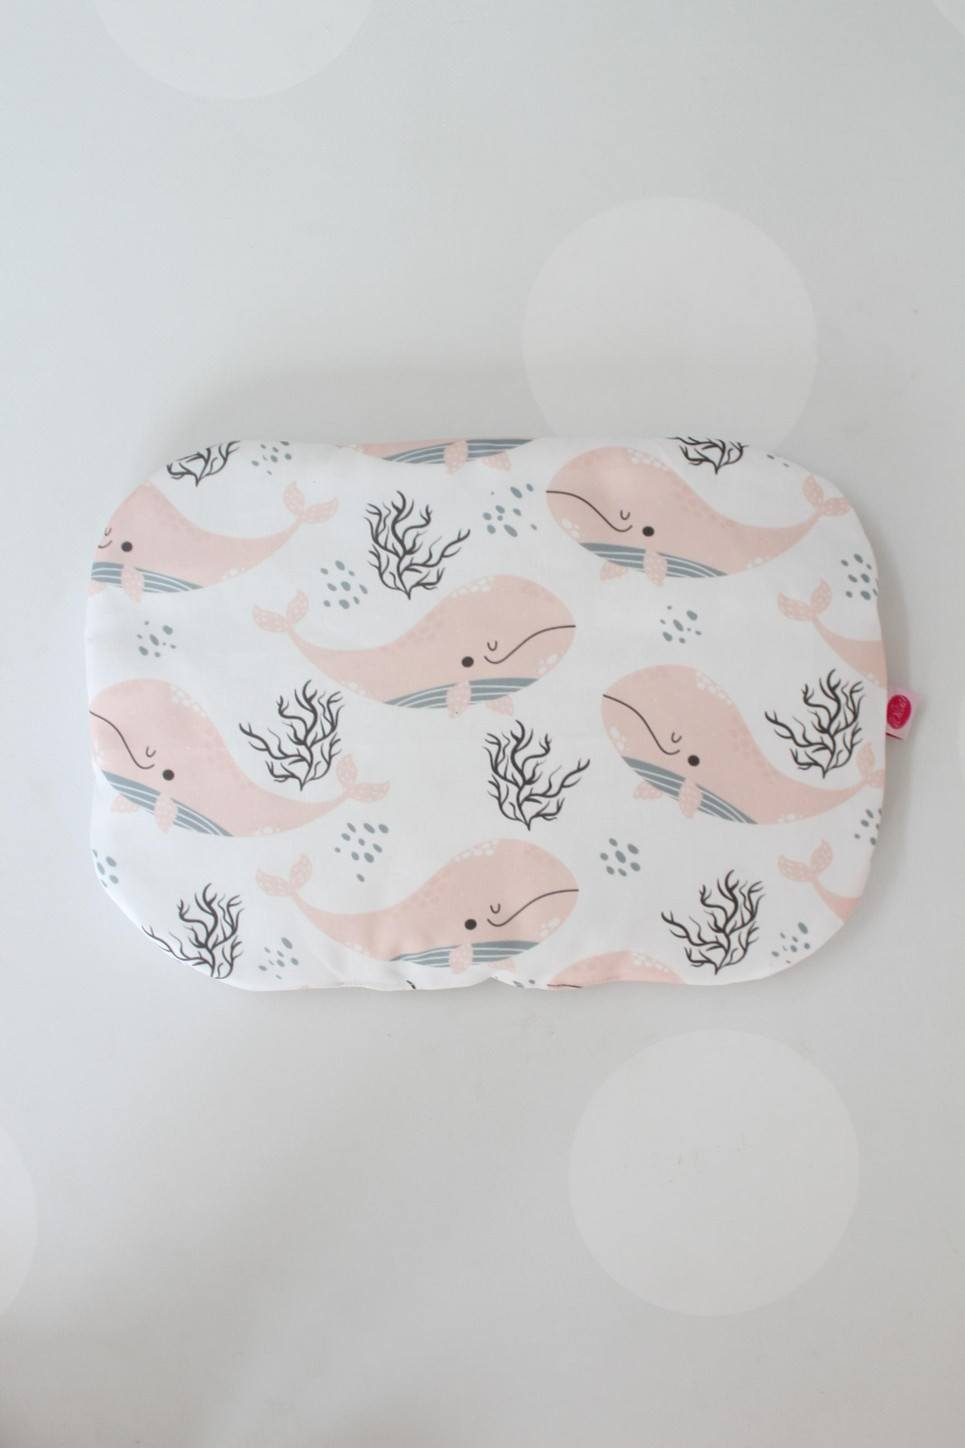 Whales and Black Spots Baby Flat Head Pillow